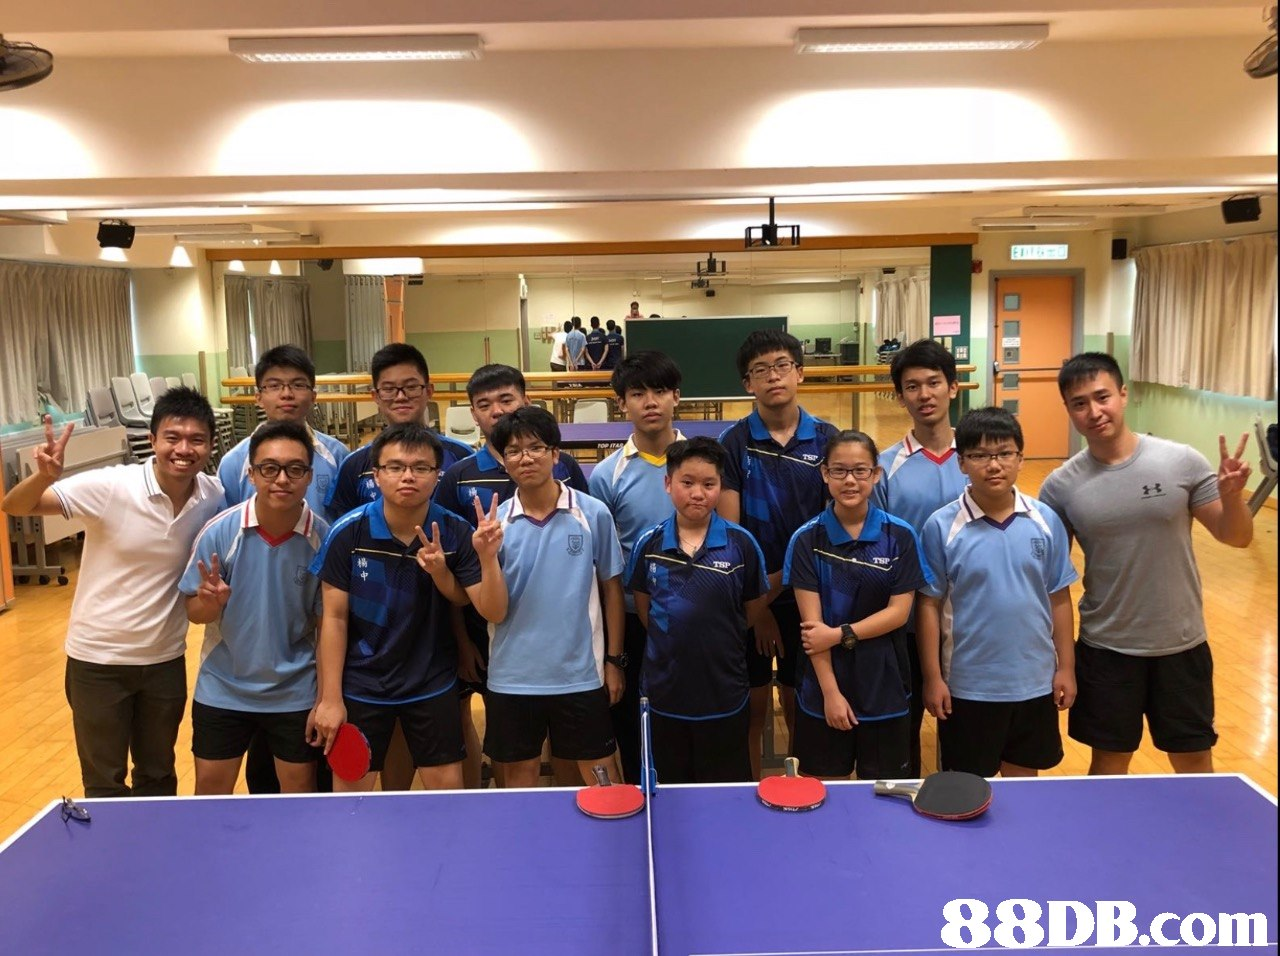 Ping pong,Team,Racquet sport,Youth,Competition event